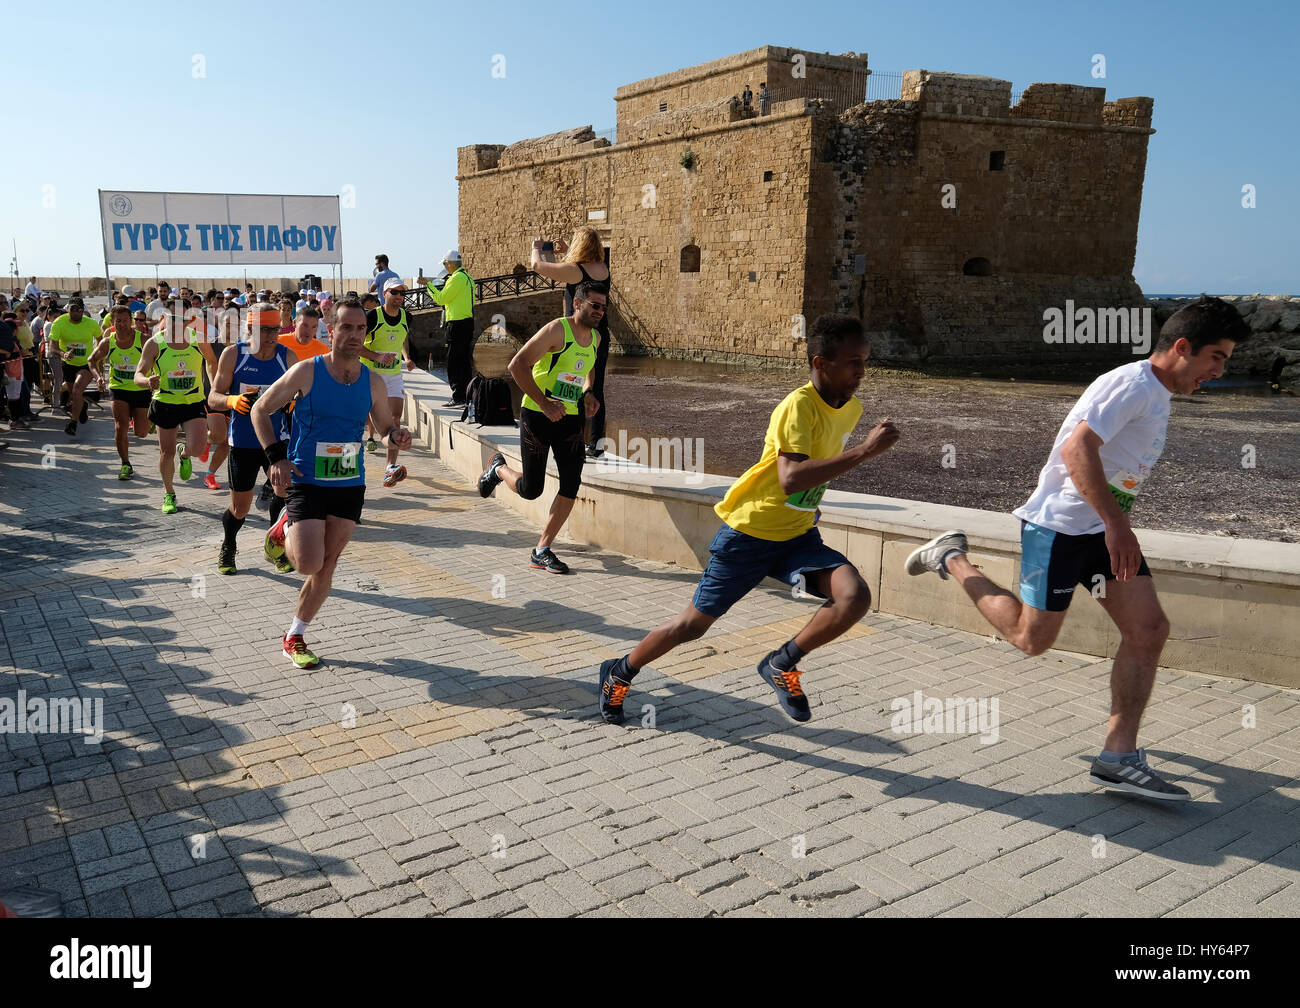 Athletes leave the start of the 4k road race in front of Paphos Castle,  Paphos Harbour, Cyprus. - Stock Image